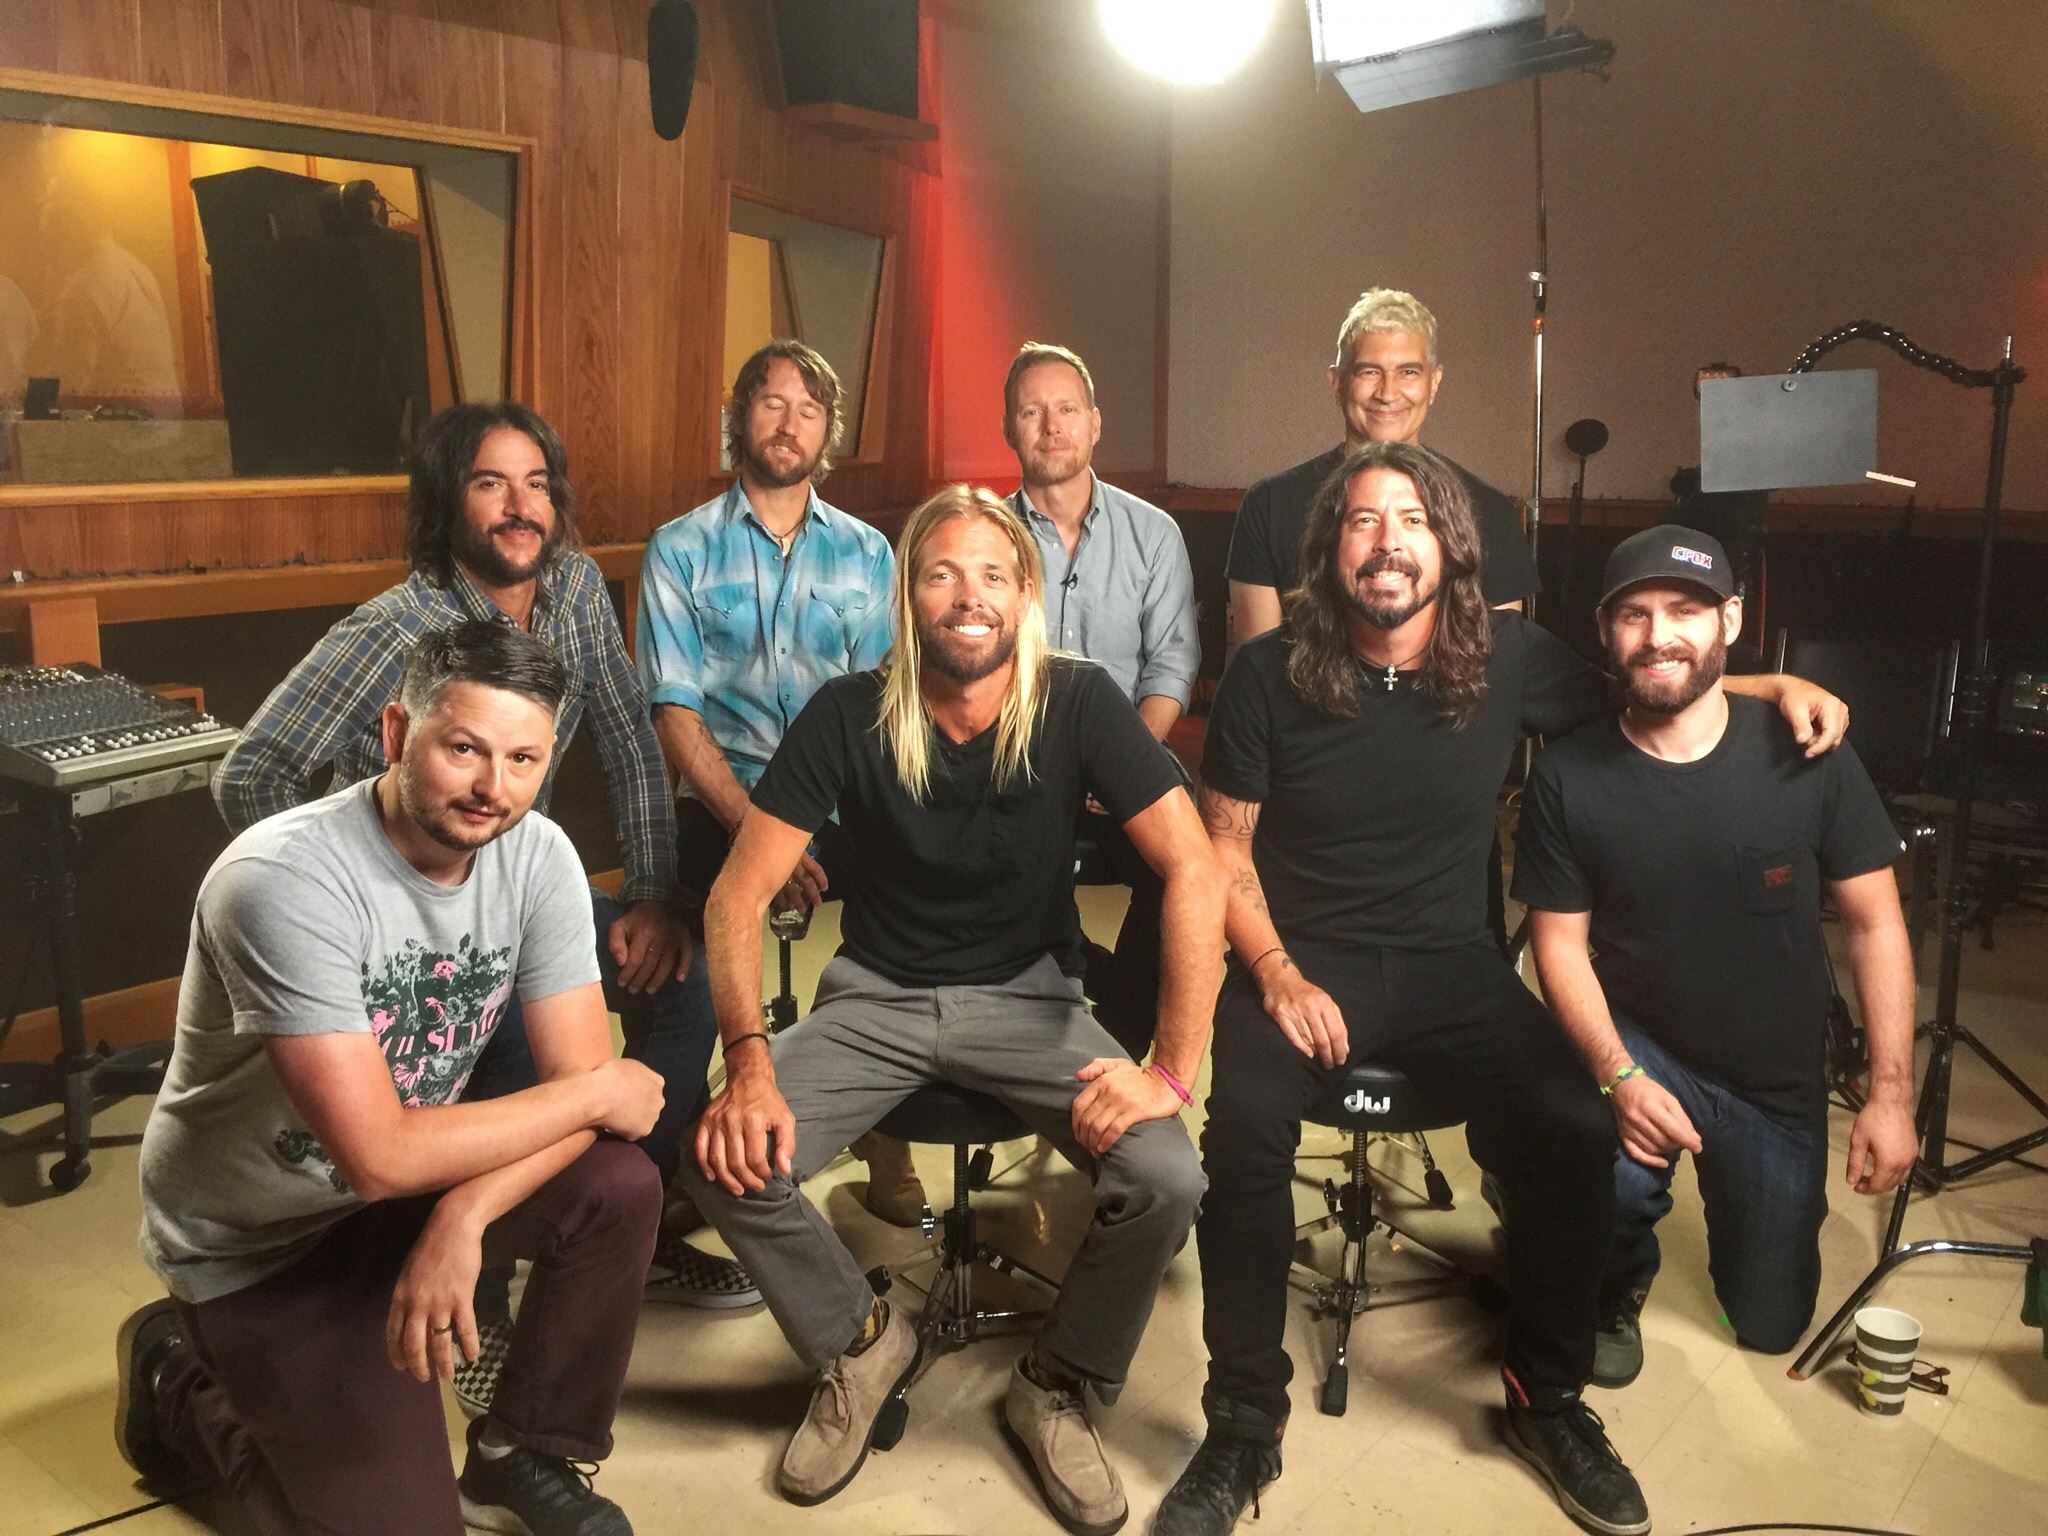 Happy 50th birthday Dave Grohl! - Jeremy (Jamie is there too)